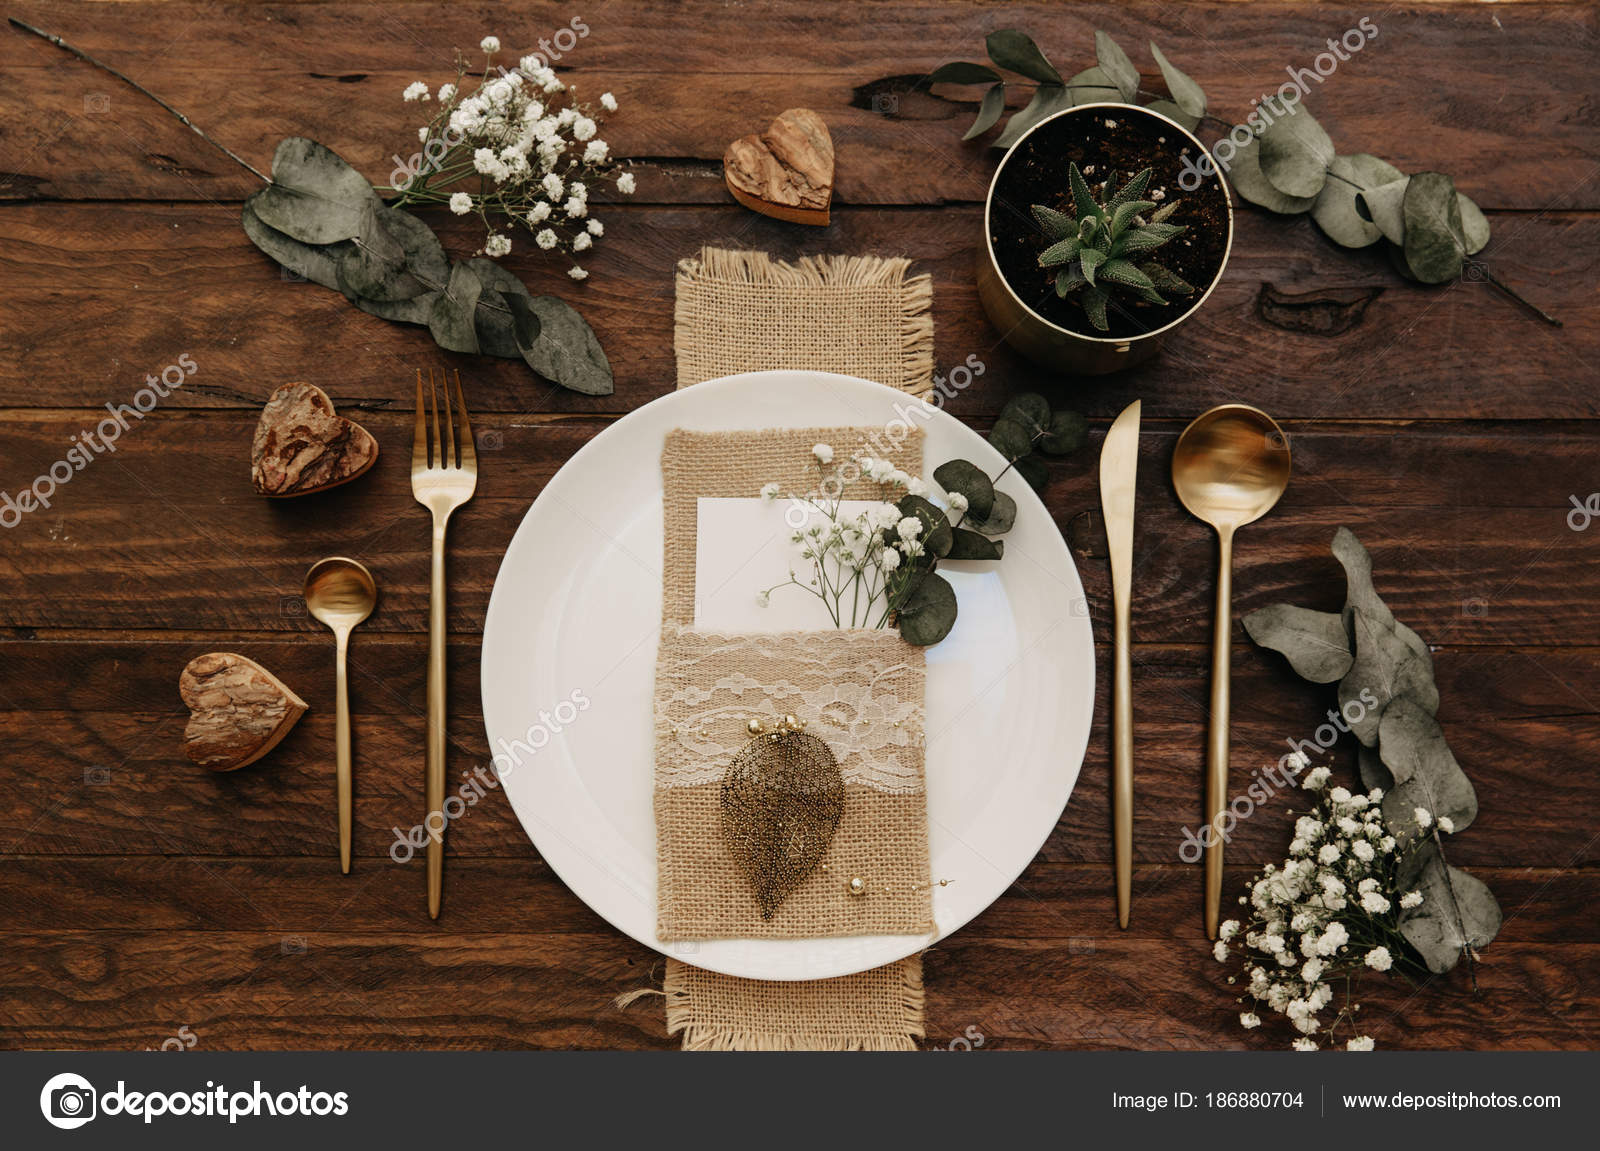 Rustic Wedding Table Set Vintage Dining Table Decorations Flowers